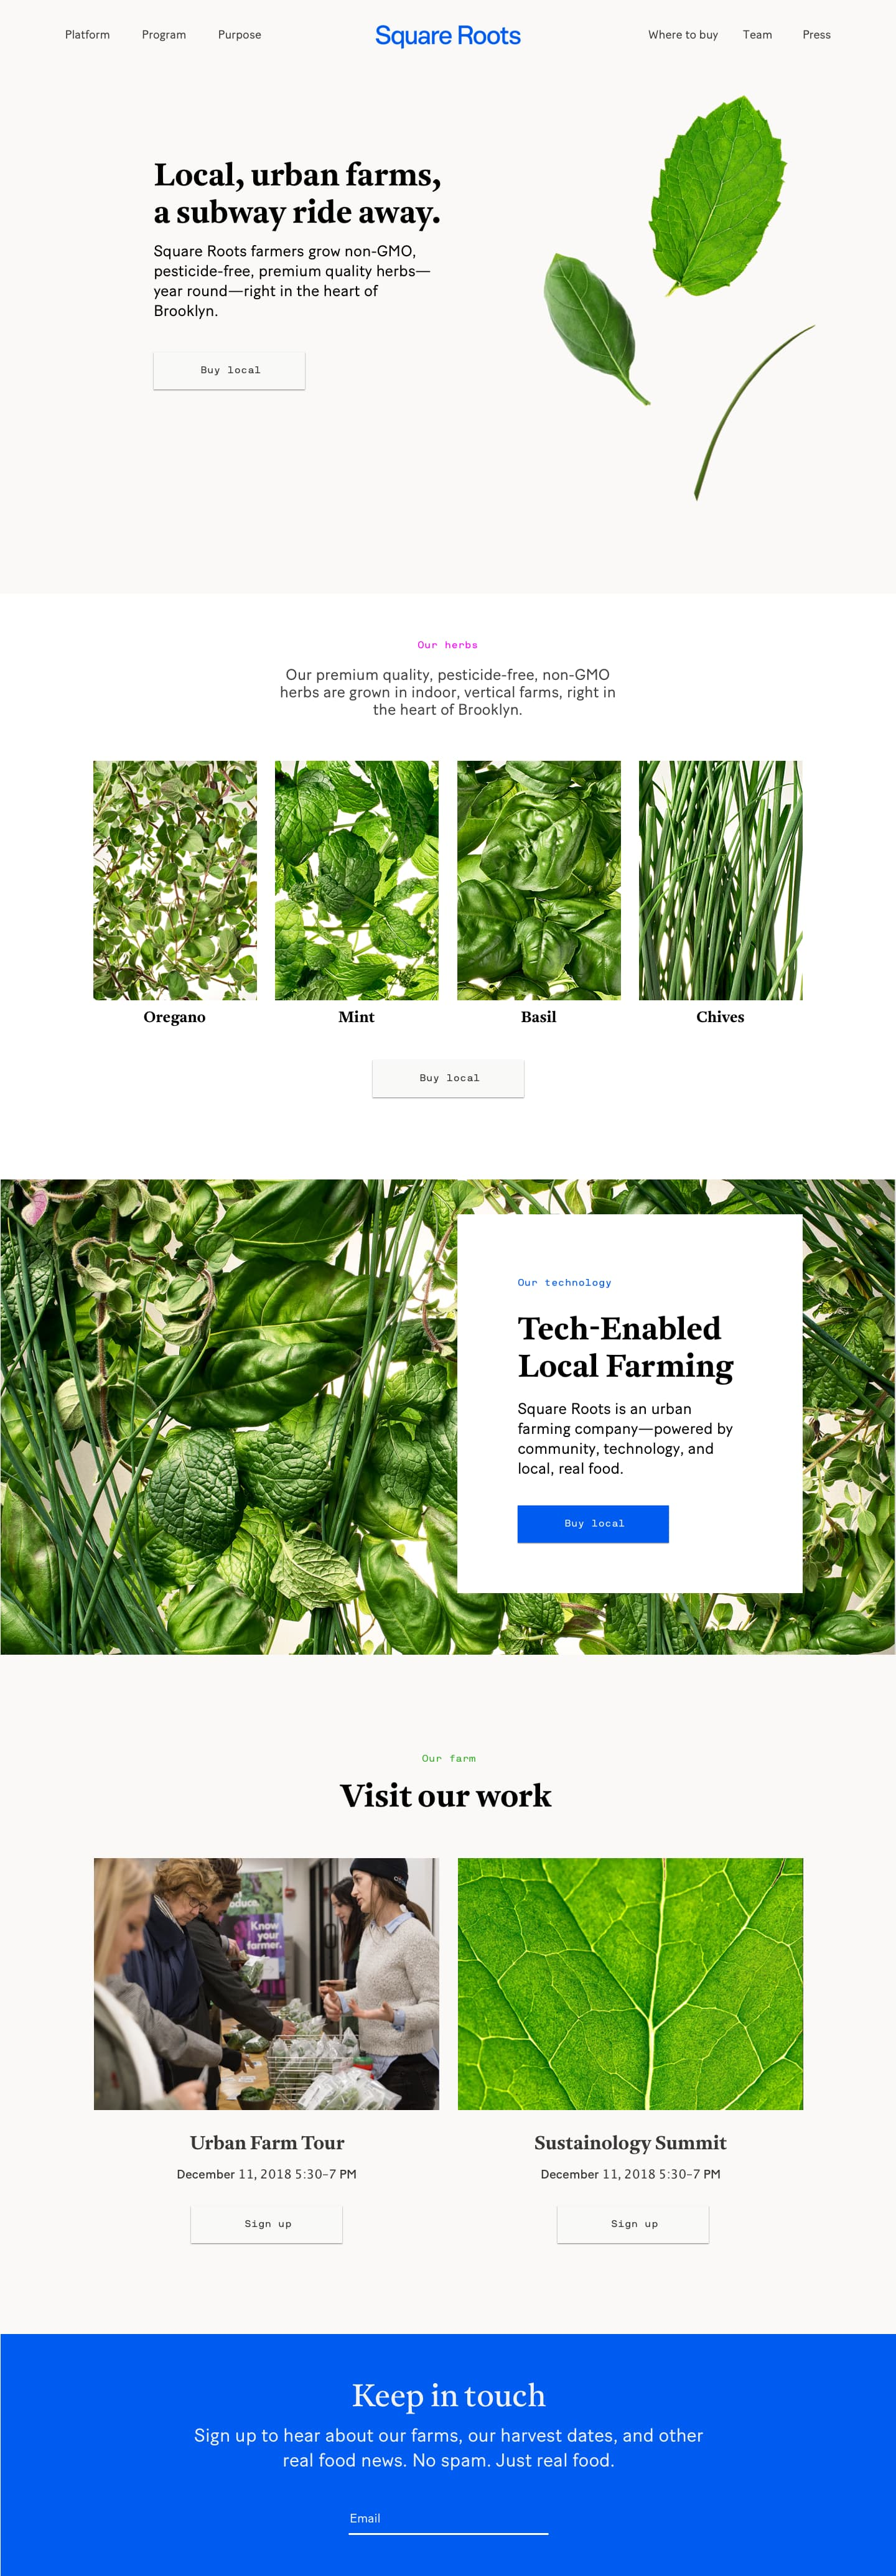 Square Roots: website, branding, and art direction